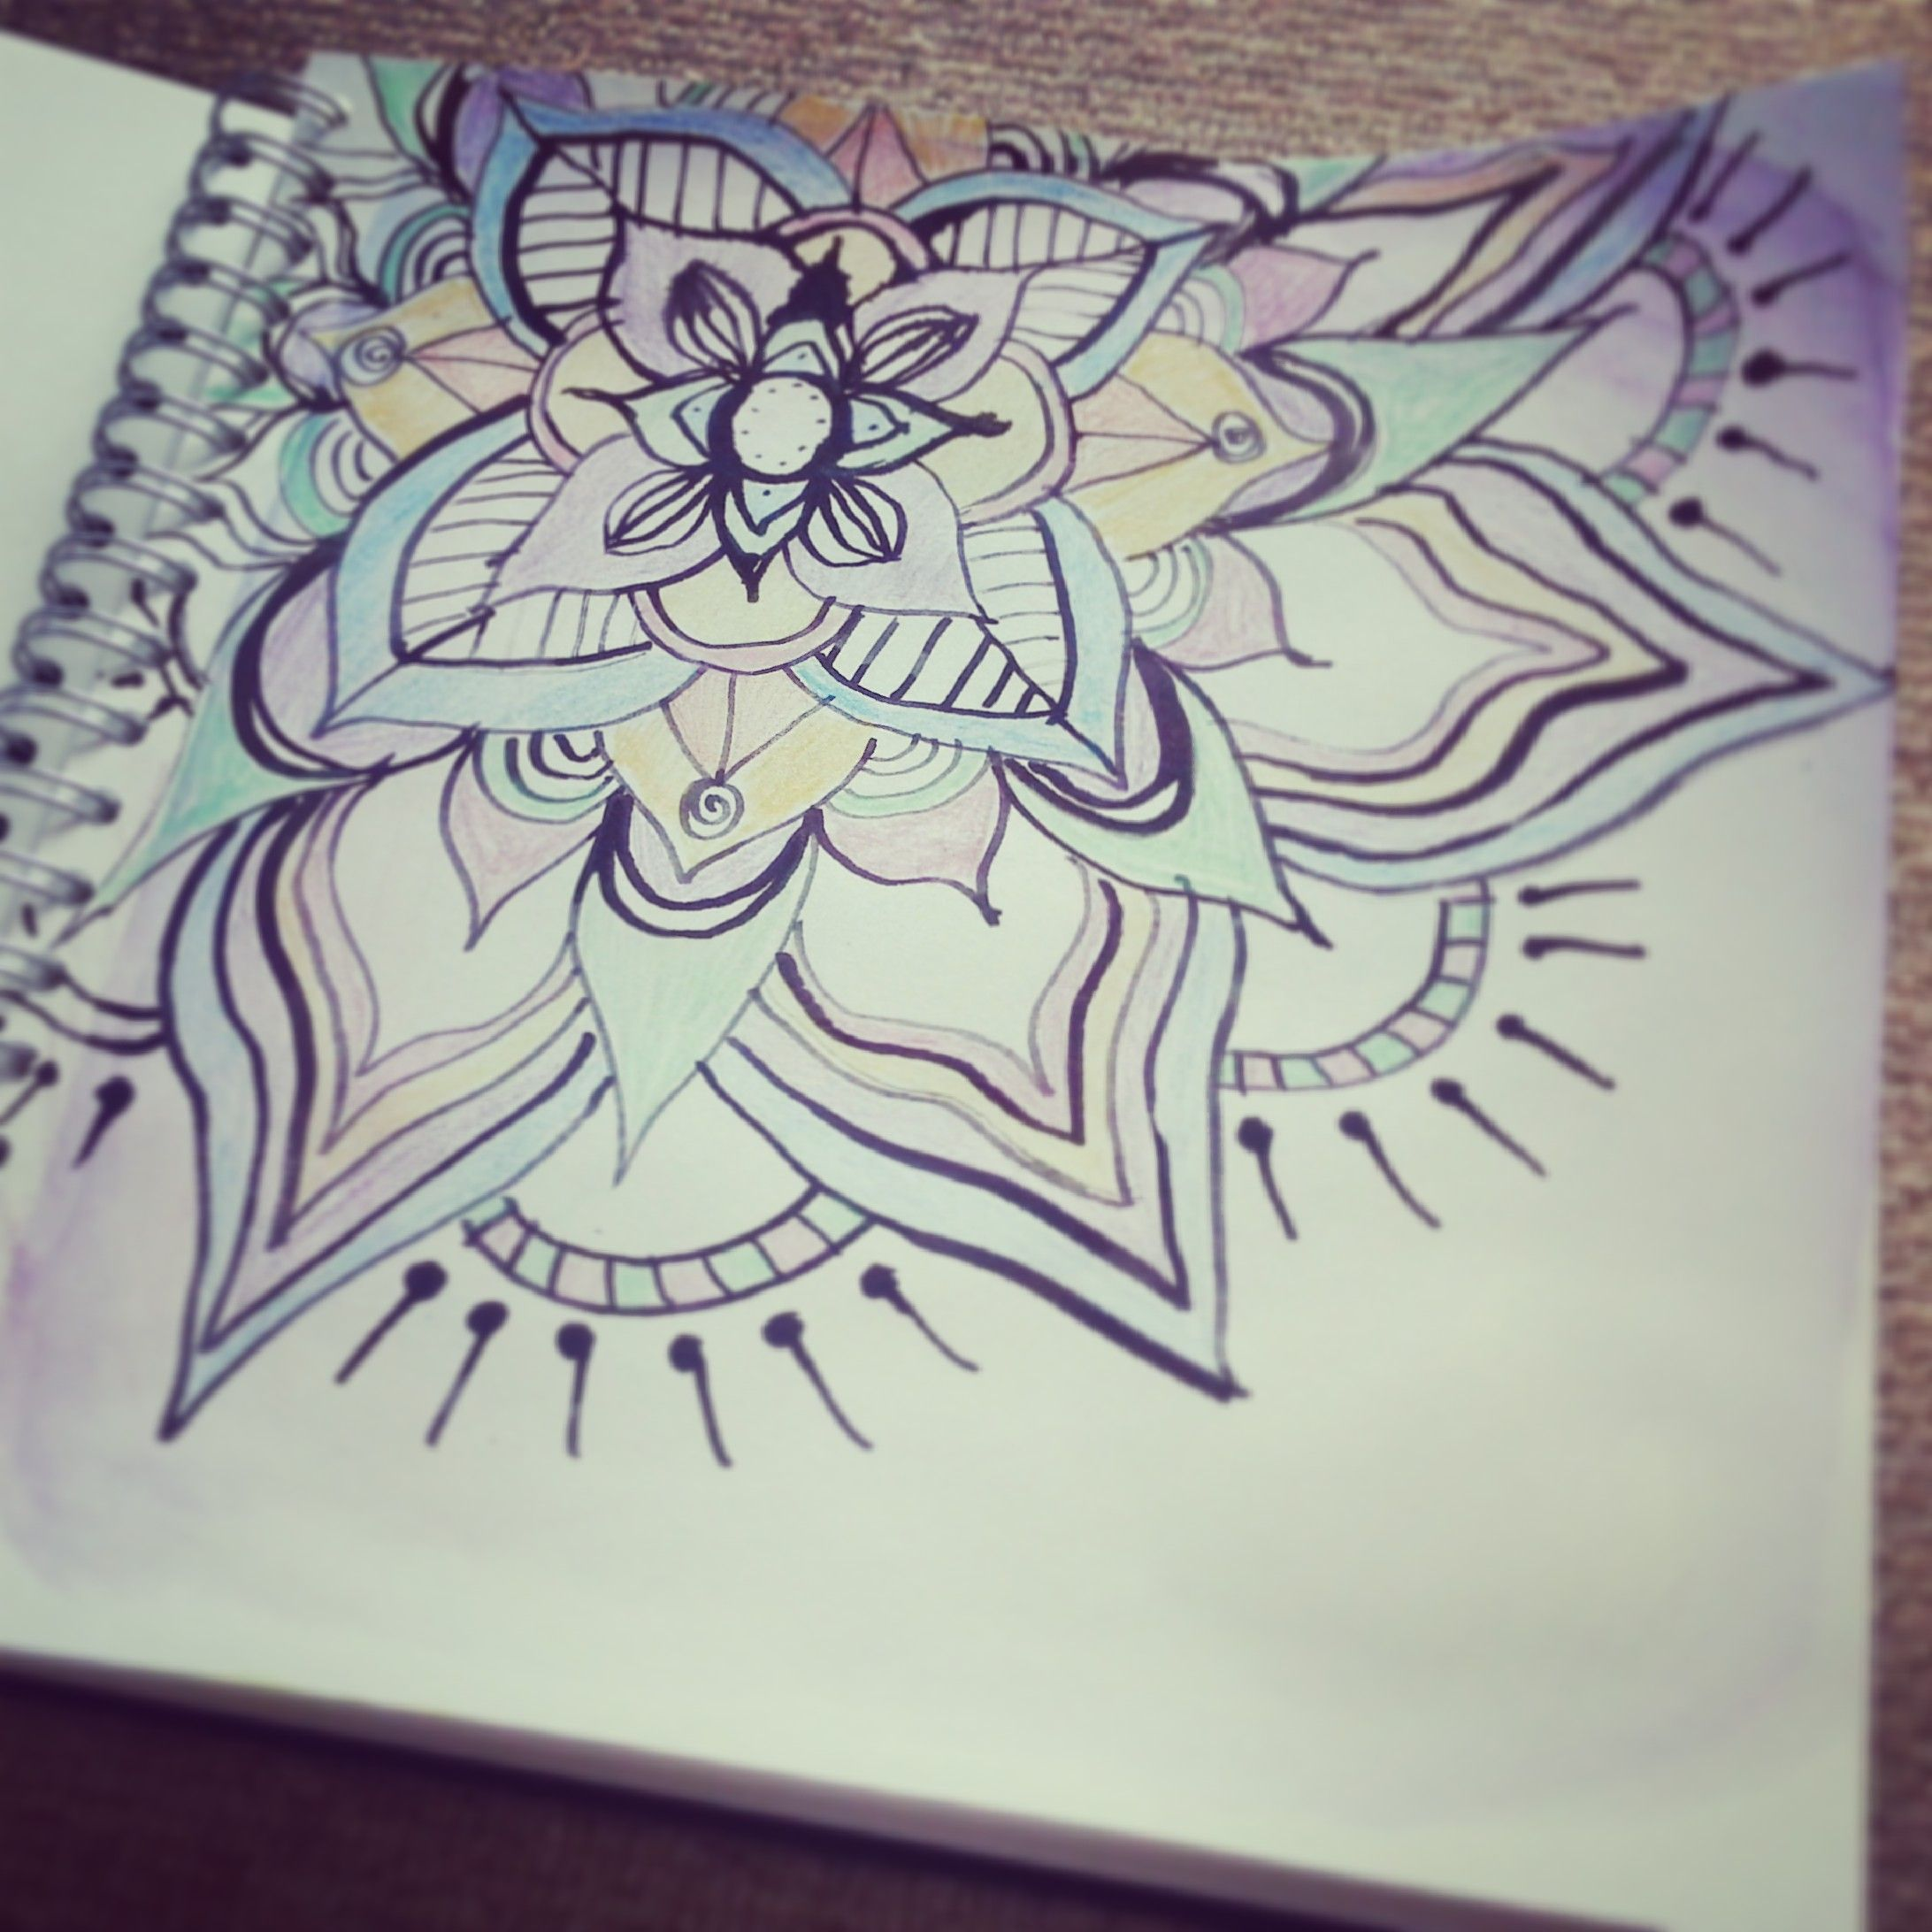 Drawing Ideas: Hipster Drawing Ideas Tumblr Easy - Google Search